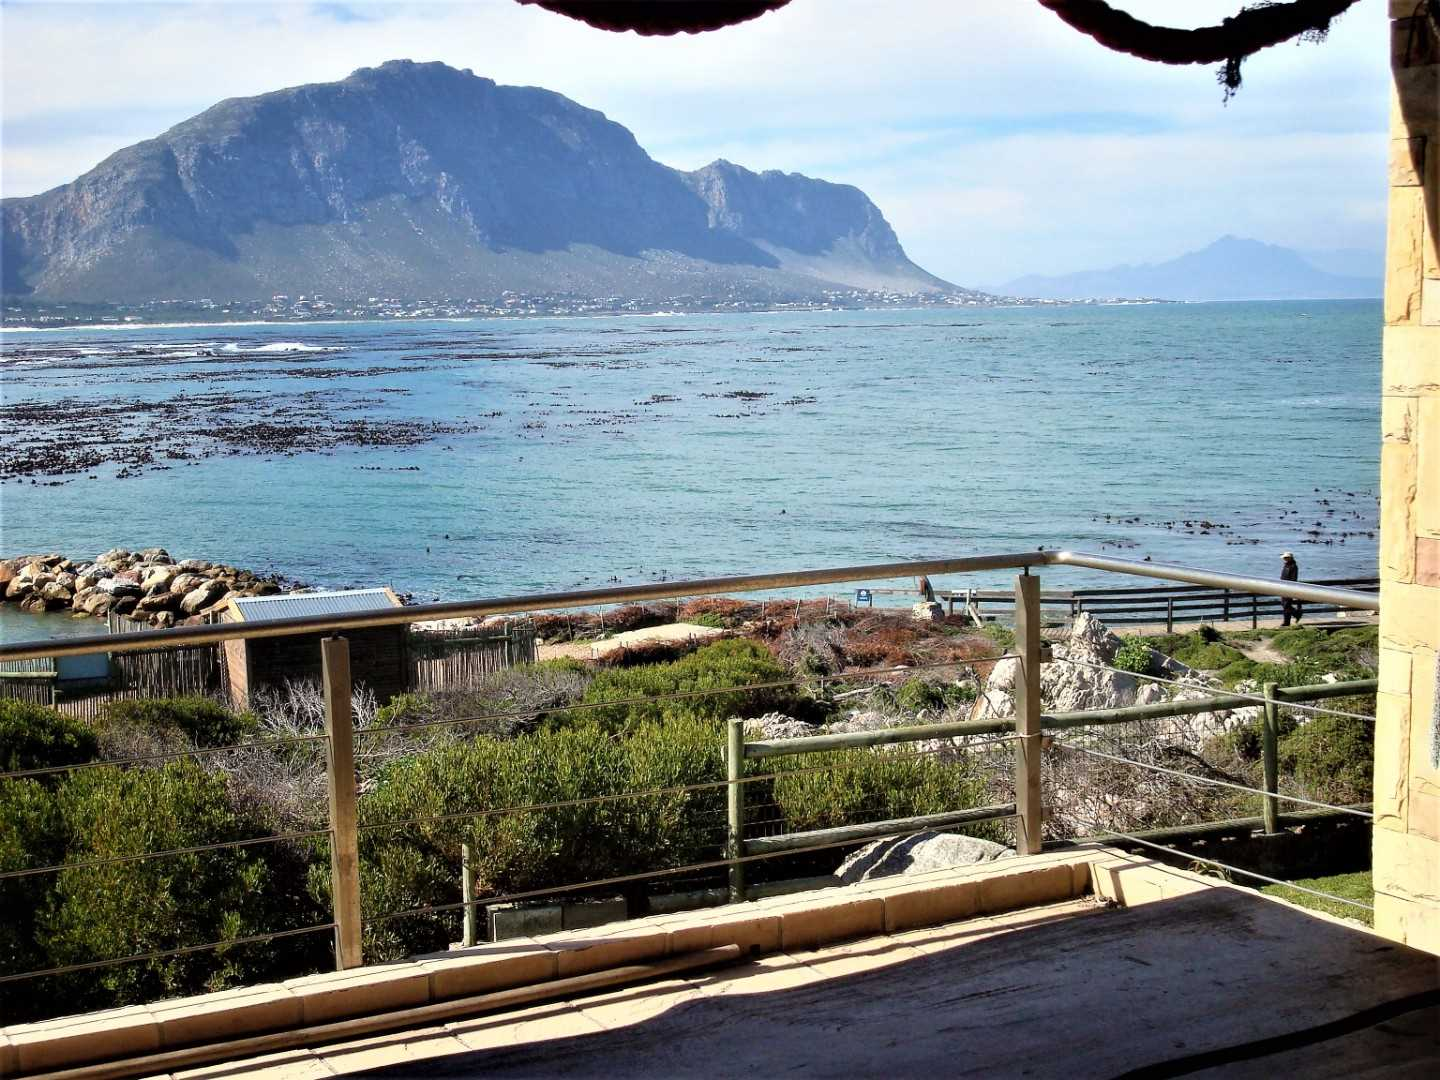 2388 Una Drive, Bettys Bay, Property for sale Bettys Bay, Harold Porter Botanical Gardens, Stoney Point, Penguins at Stoney Point, Seafront properties in Bettys Bay